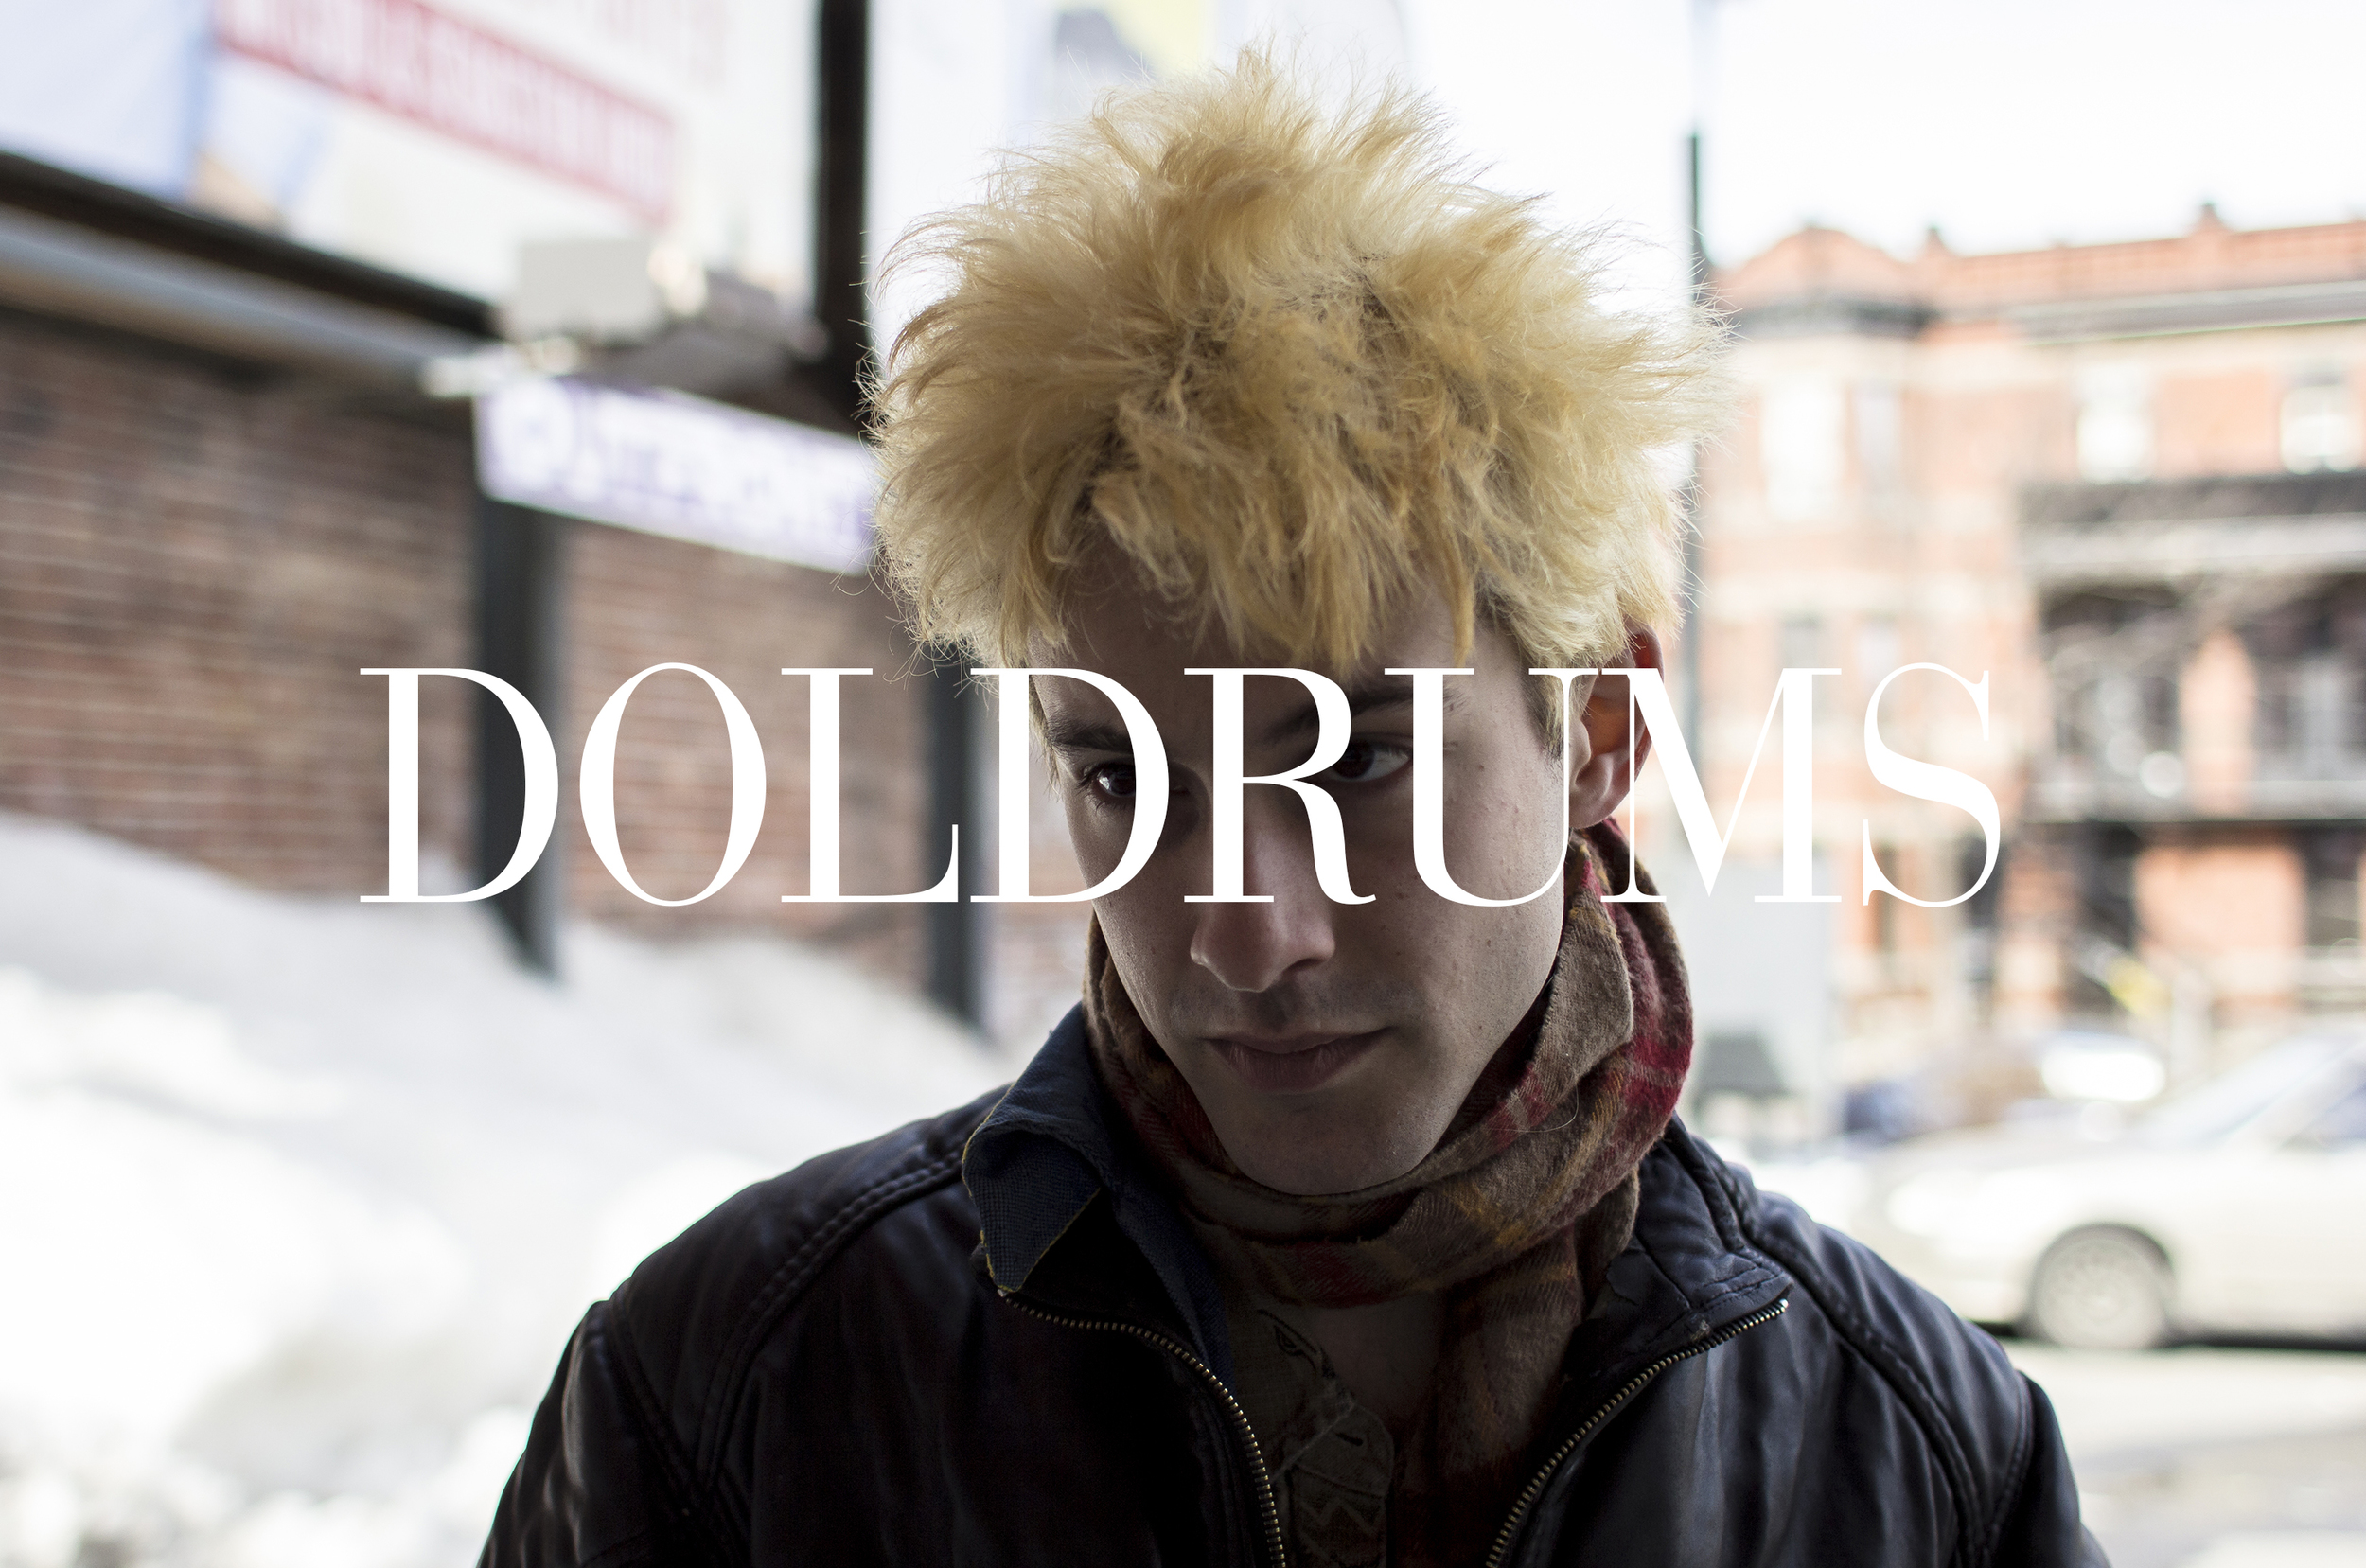 """MUSIC  With their new album,  The Air Conditioned Nightmare,  Montreal-based Doldrums explores a """"dreamy, cool, and scary world."""" We chat with Airick Woodhead of Doldrumsabout what inspired the dystopian record."""